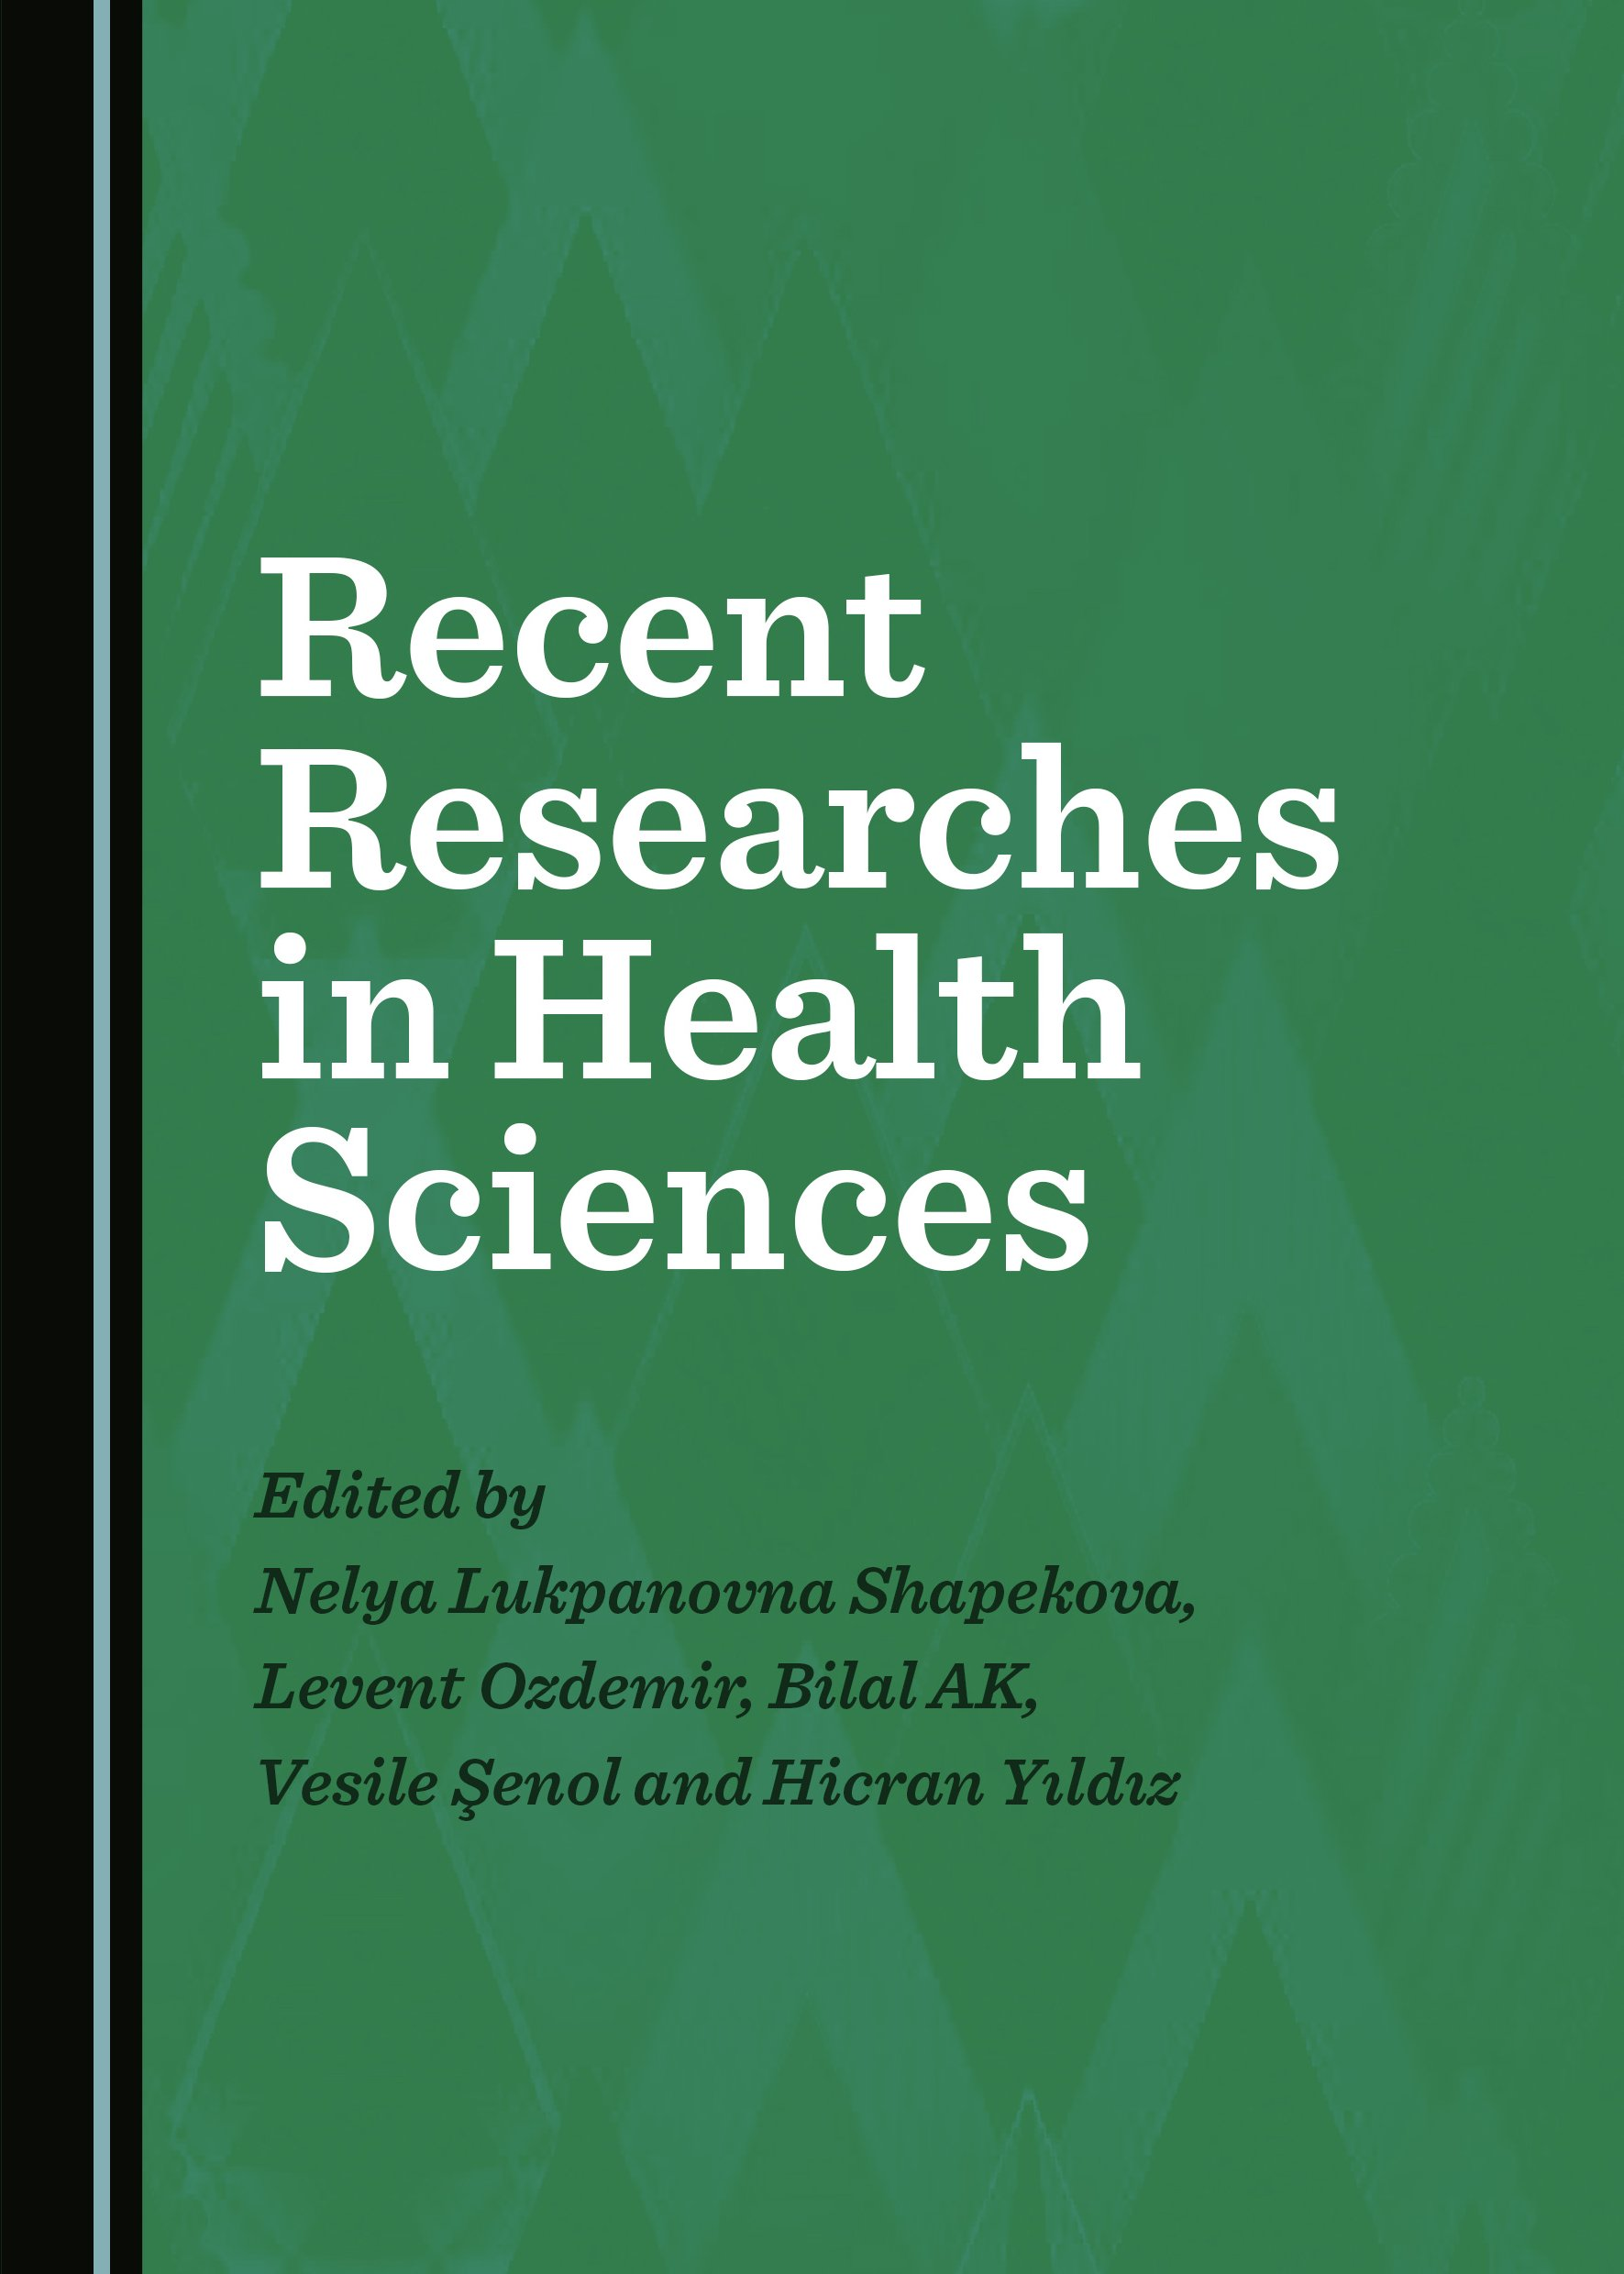 Recent Researches in Health Sciences